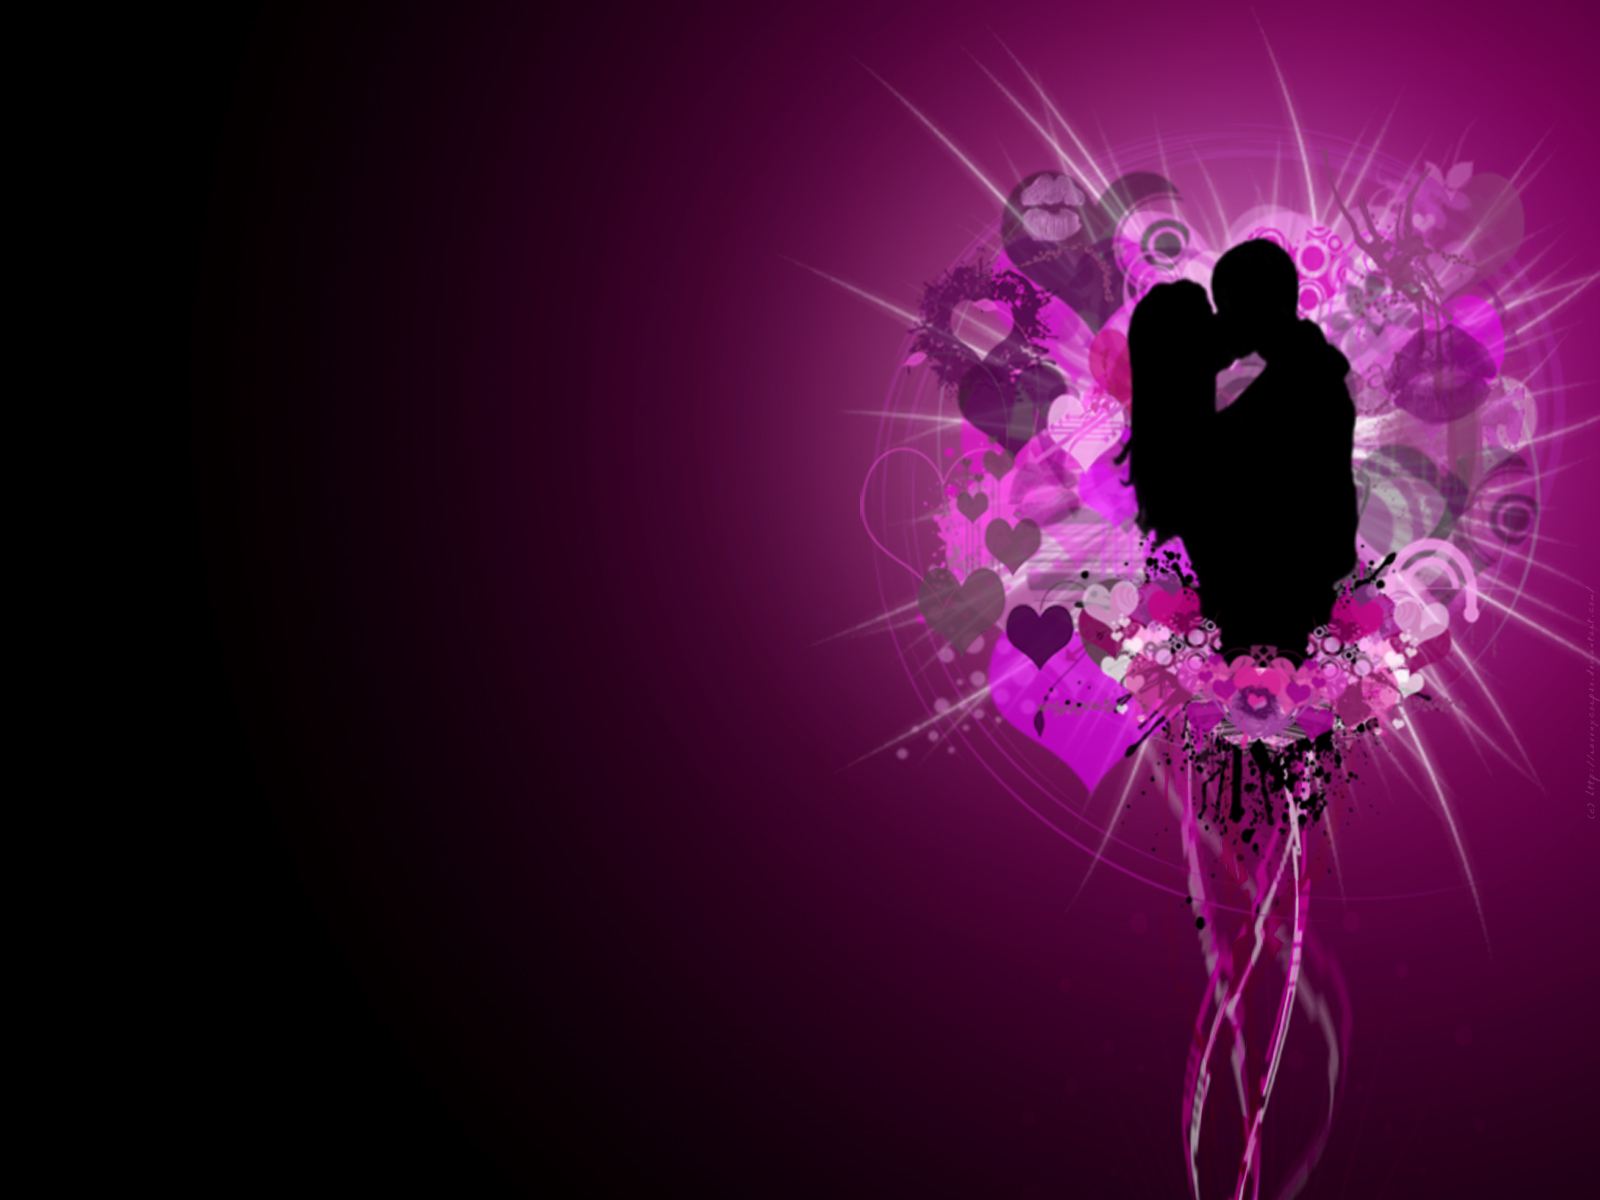 valentine wallpapers beautiful love backgrounds for desktop computers 1600x1200